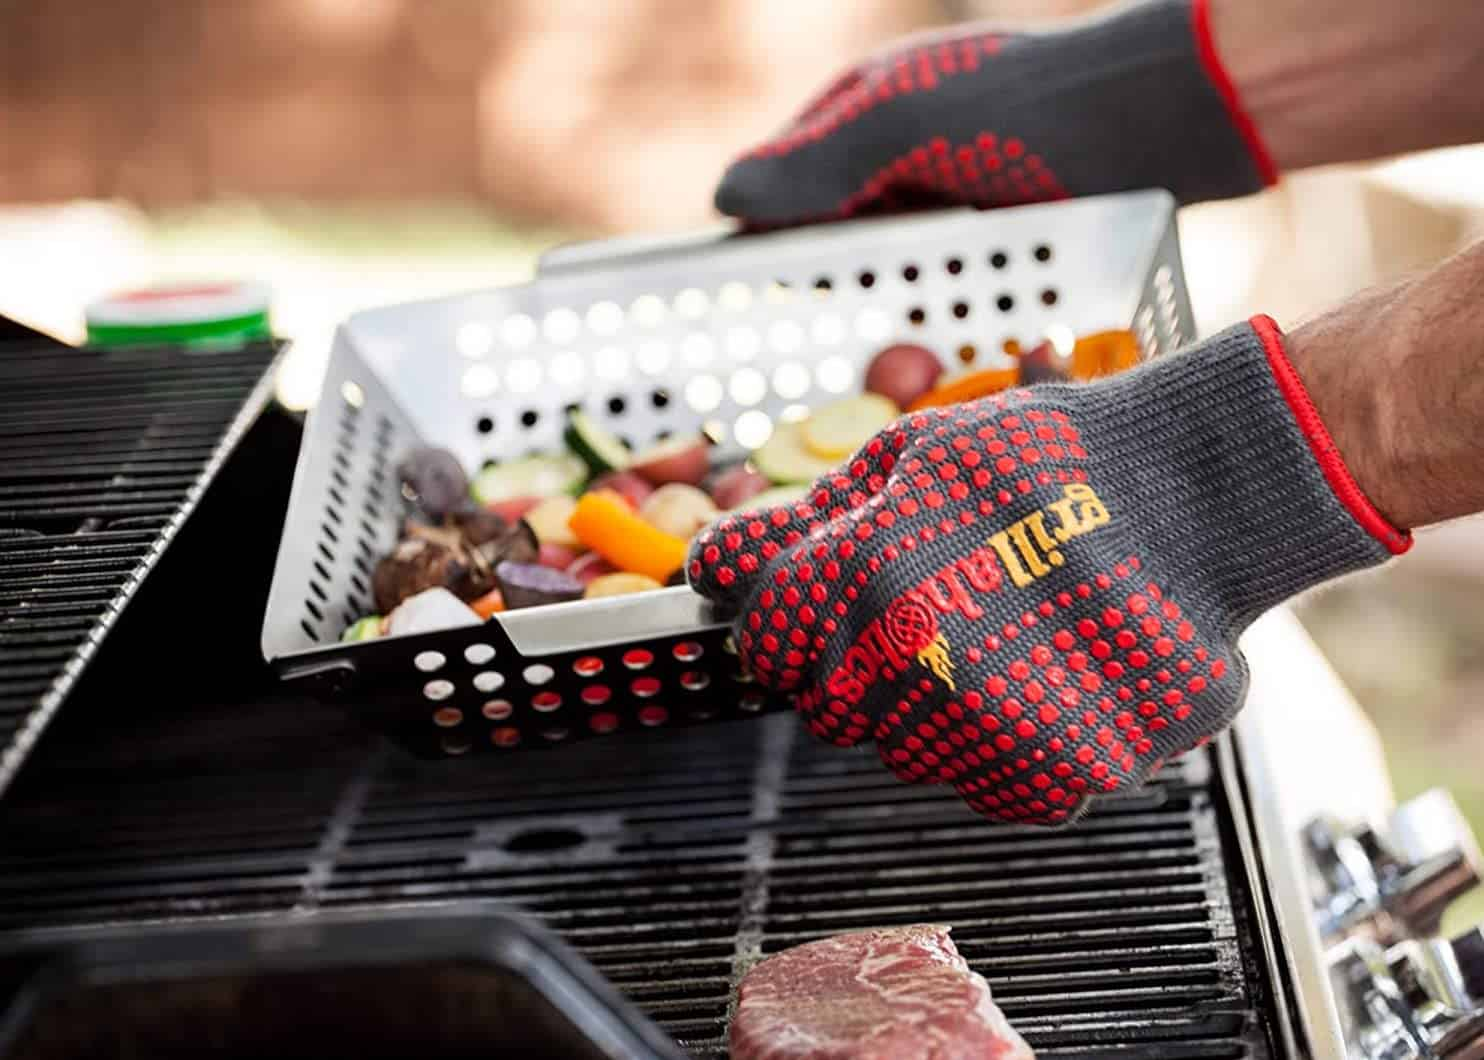 Best silicone BBQ gloves- Grillaholics Silicone Barbecue Gloves grabbing grill basket